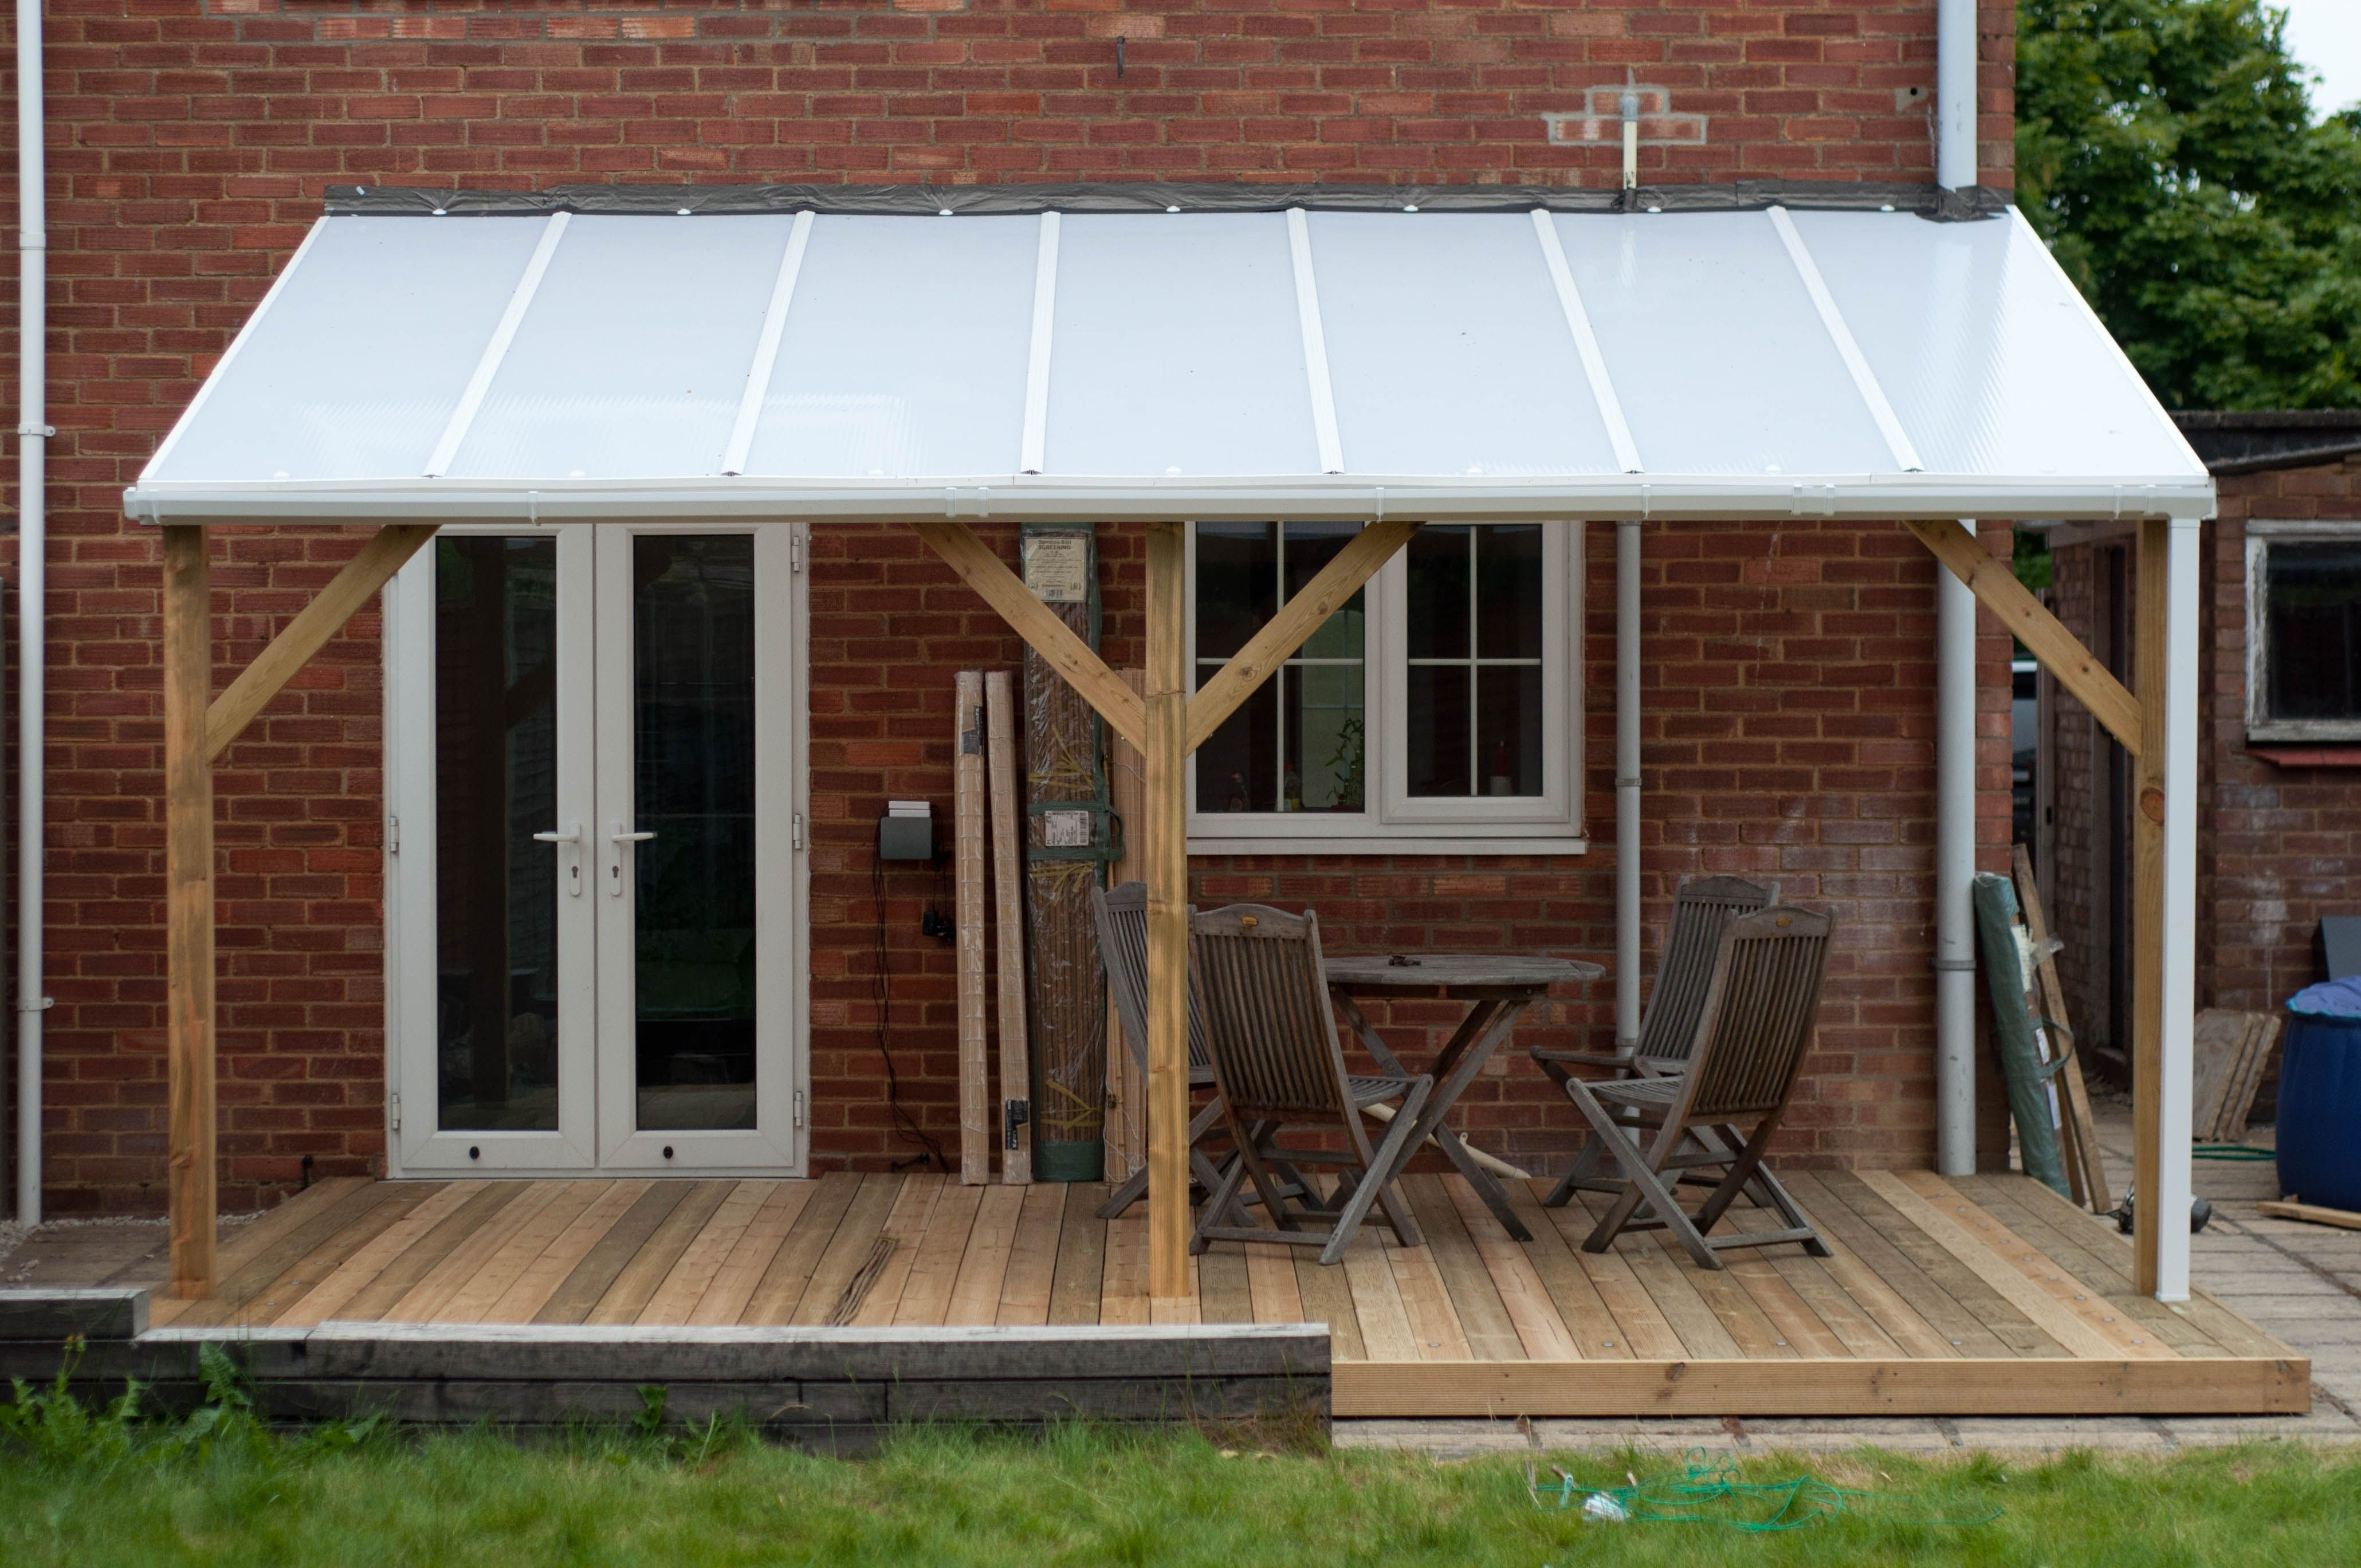 Lean To Roof Plans : Rickyhil Outdoor Ideas - Lean To Roof ...